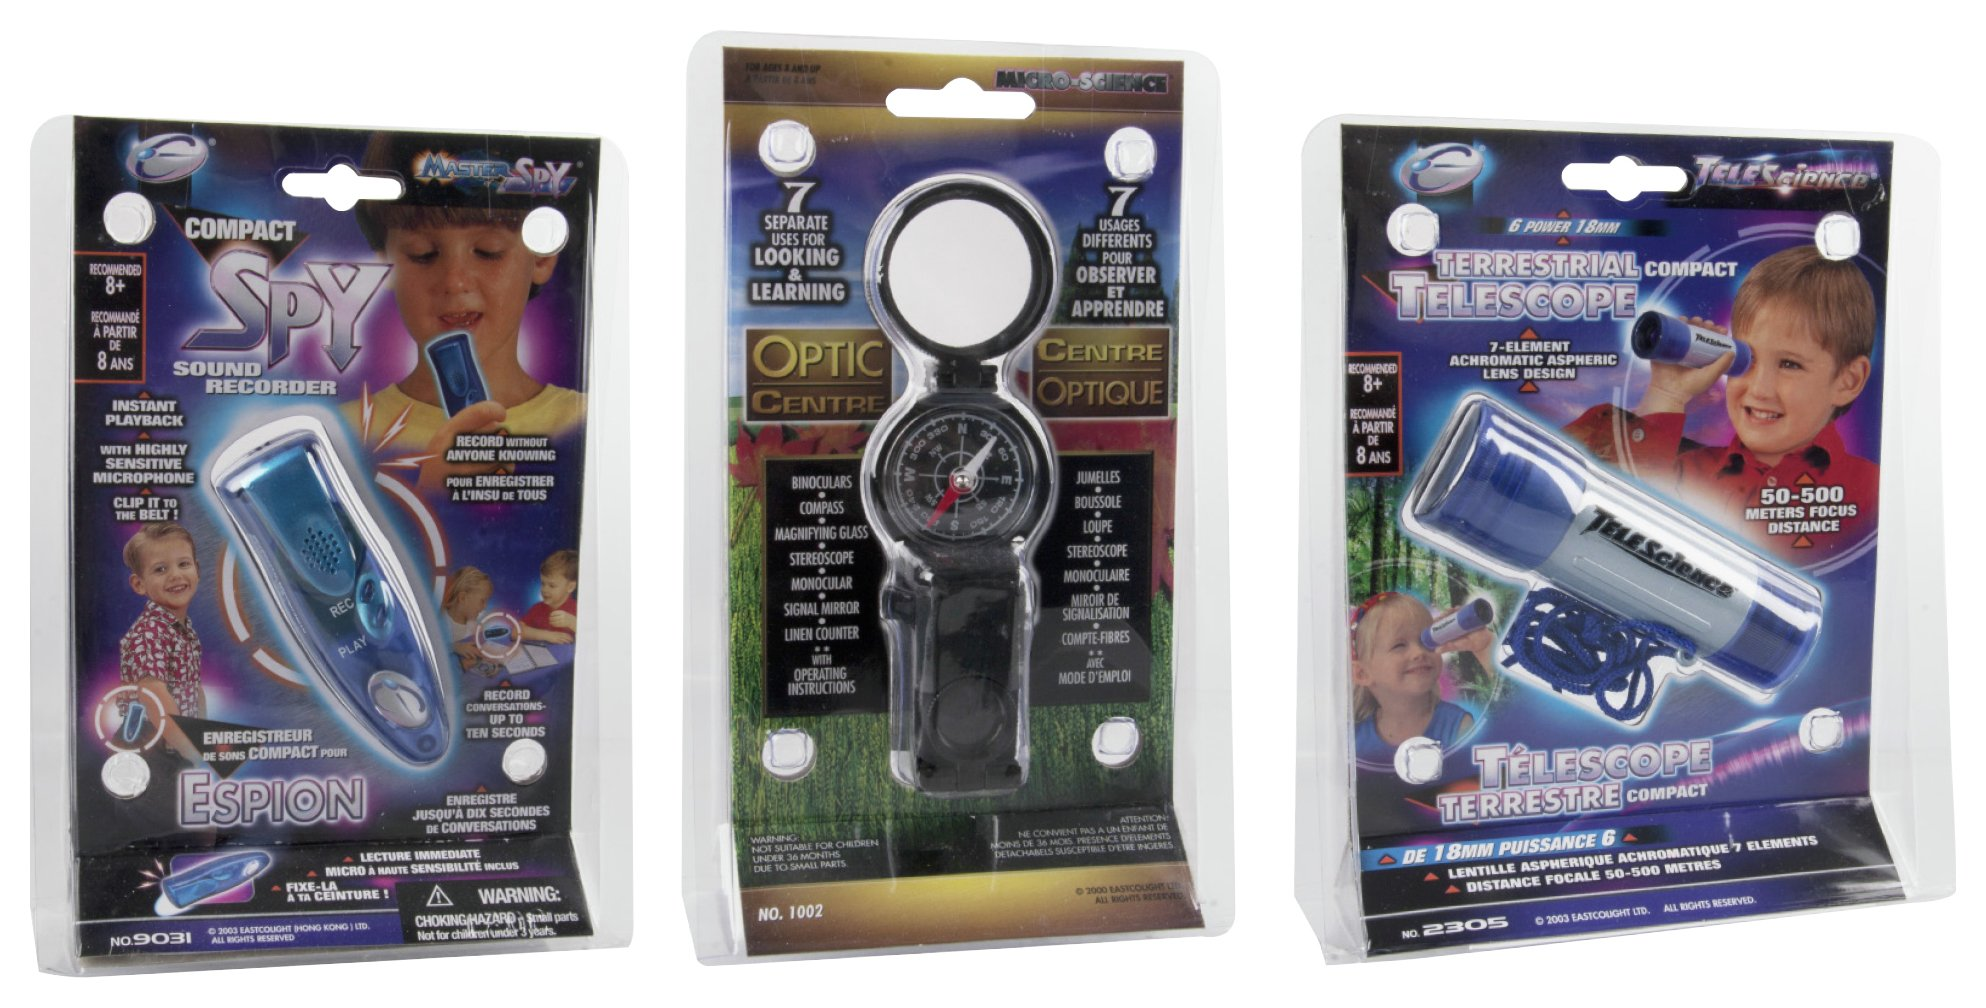 Great Gizmos Spy Compact Telescope, Recorder and Optic